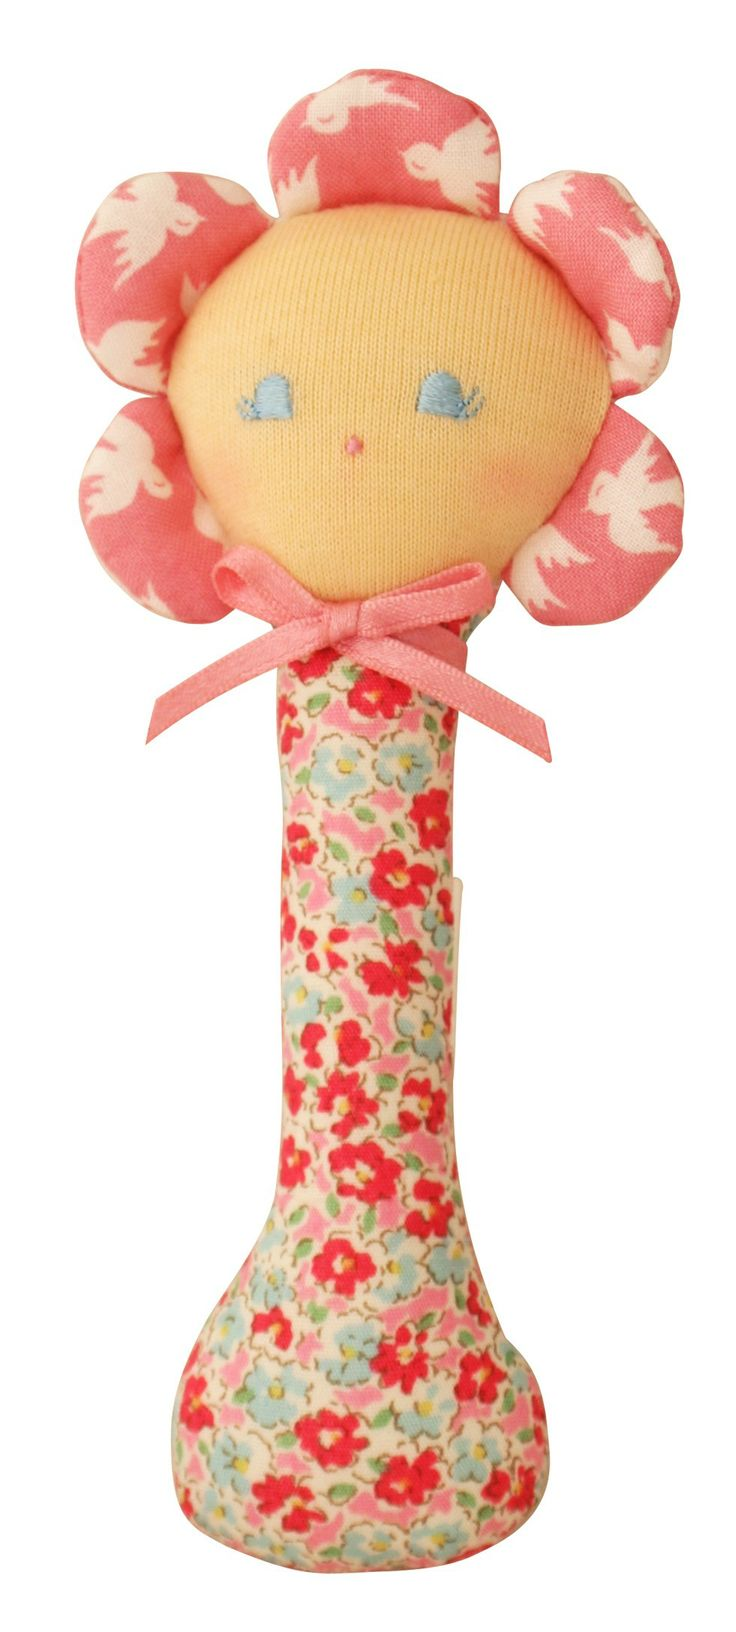 Flower Doll stick rattle available at www.motherbabystore.com.au by Alimrose Designs